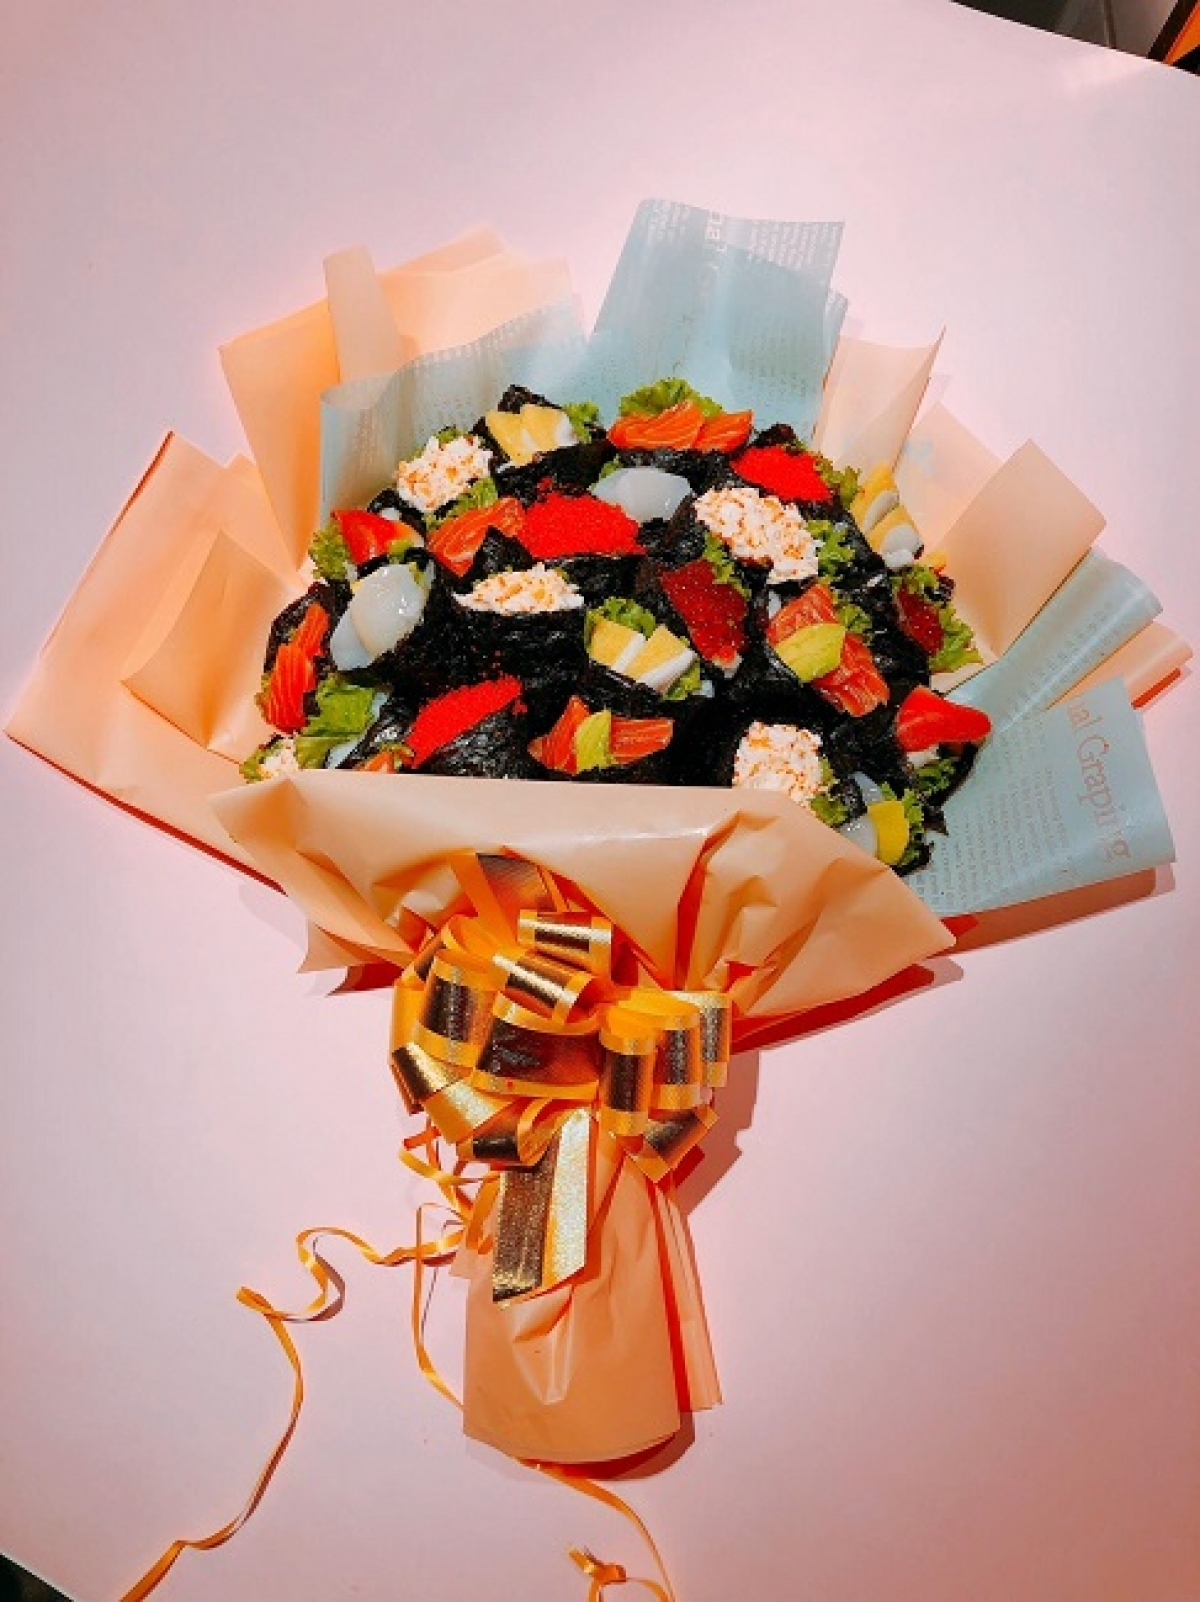 A unique bouquet made from sushi represents a gift to mark the annual Vietnam Teachers' Day celebrations of November 20.